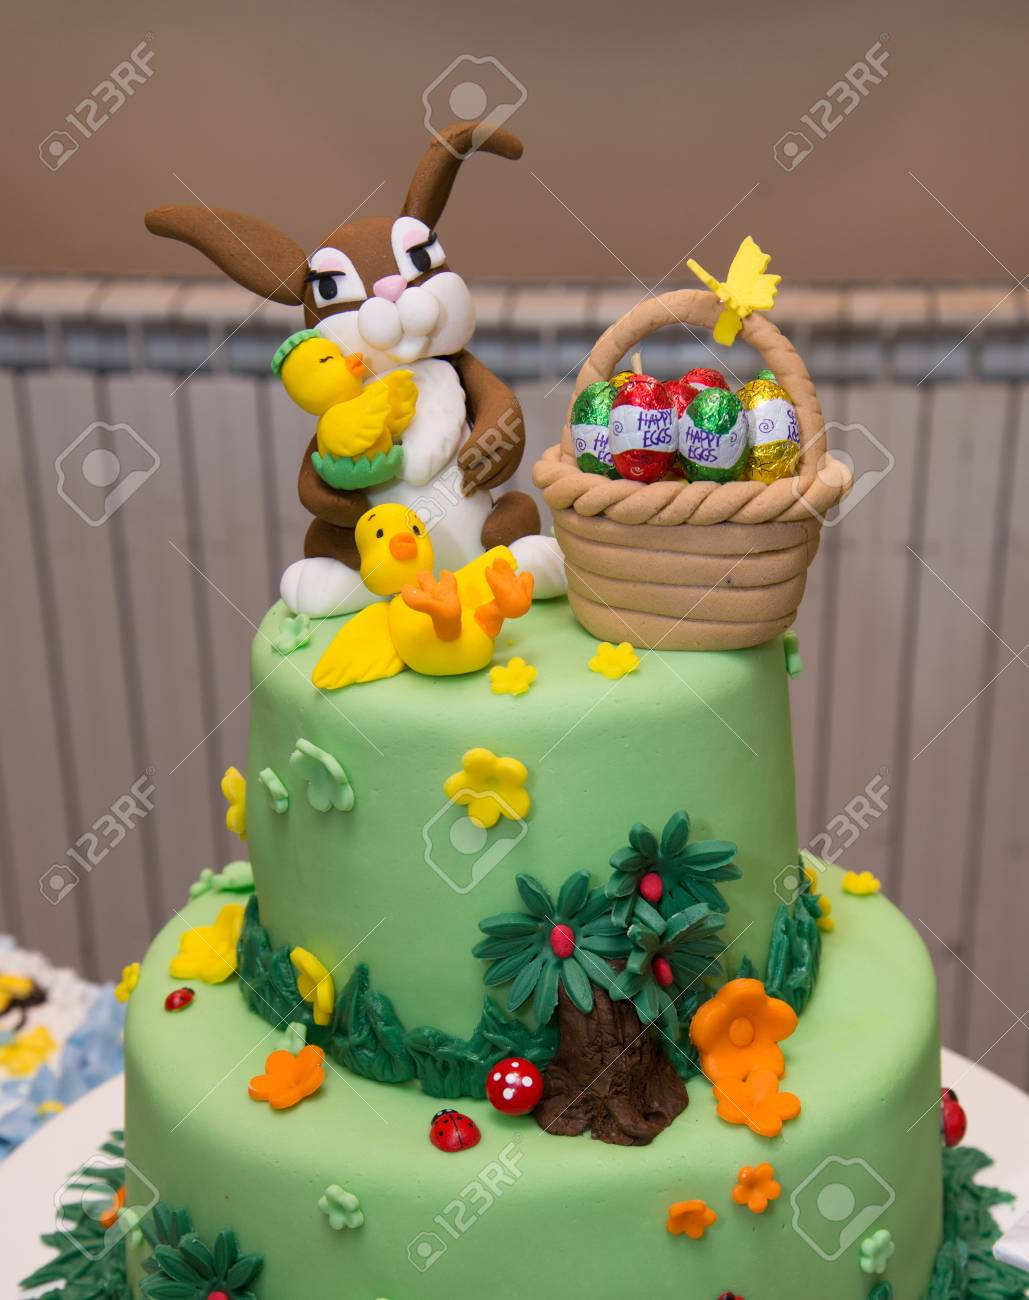 Baby Boy Birthday Cake With Bunny Decoration Easter Stock Photo Picture And Royalty Free Image Image 81283701